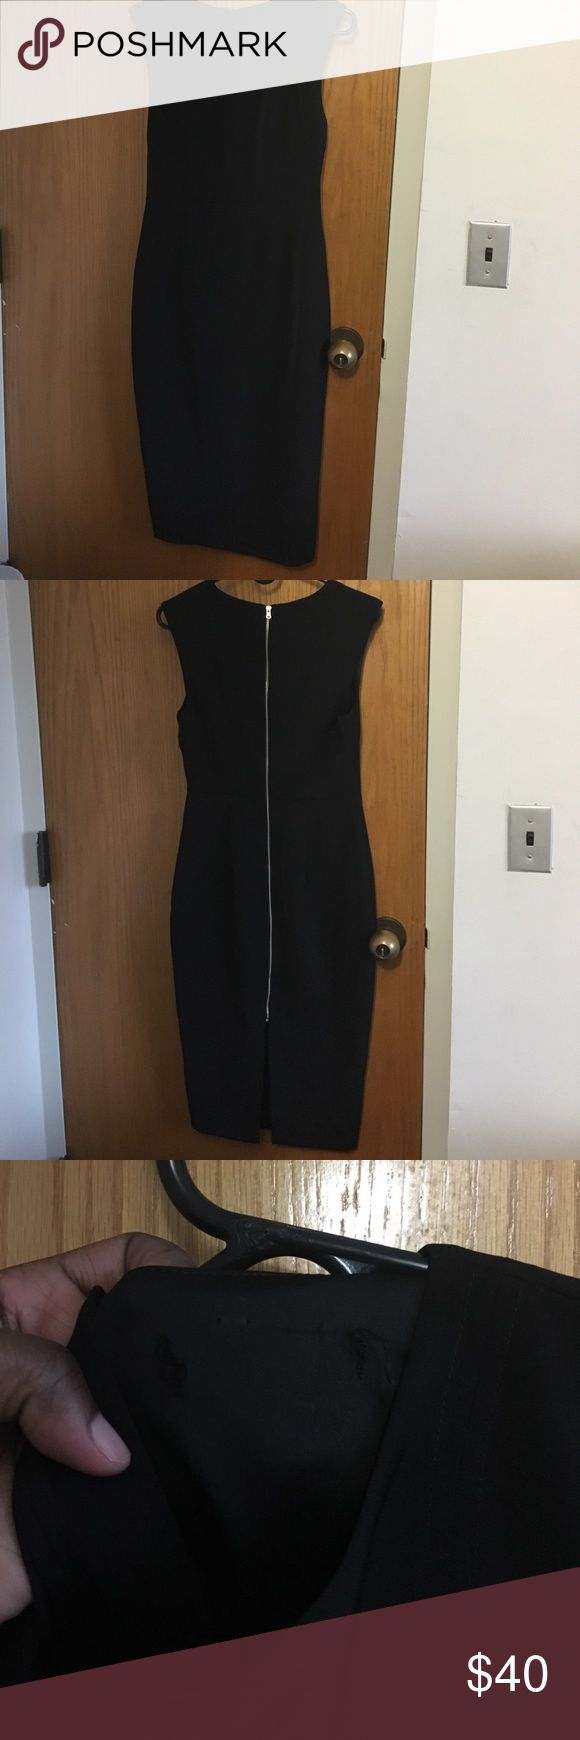 """Black midi-length dress Black, straight midi length dress. Dress was previously dry cleaned and is missing """"express"""" tag on the inside. The third picture is showing the damage where the tag was ripped. I'm not sure why but this is what I noticed when it came back from the dry cleaners. Express Dresses Midi"""